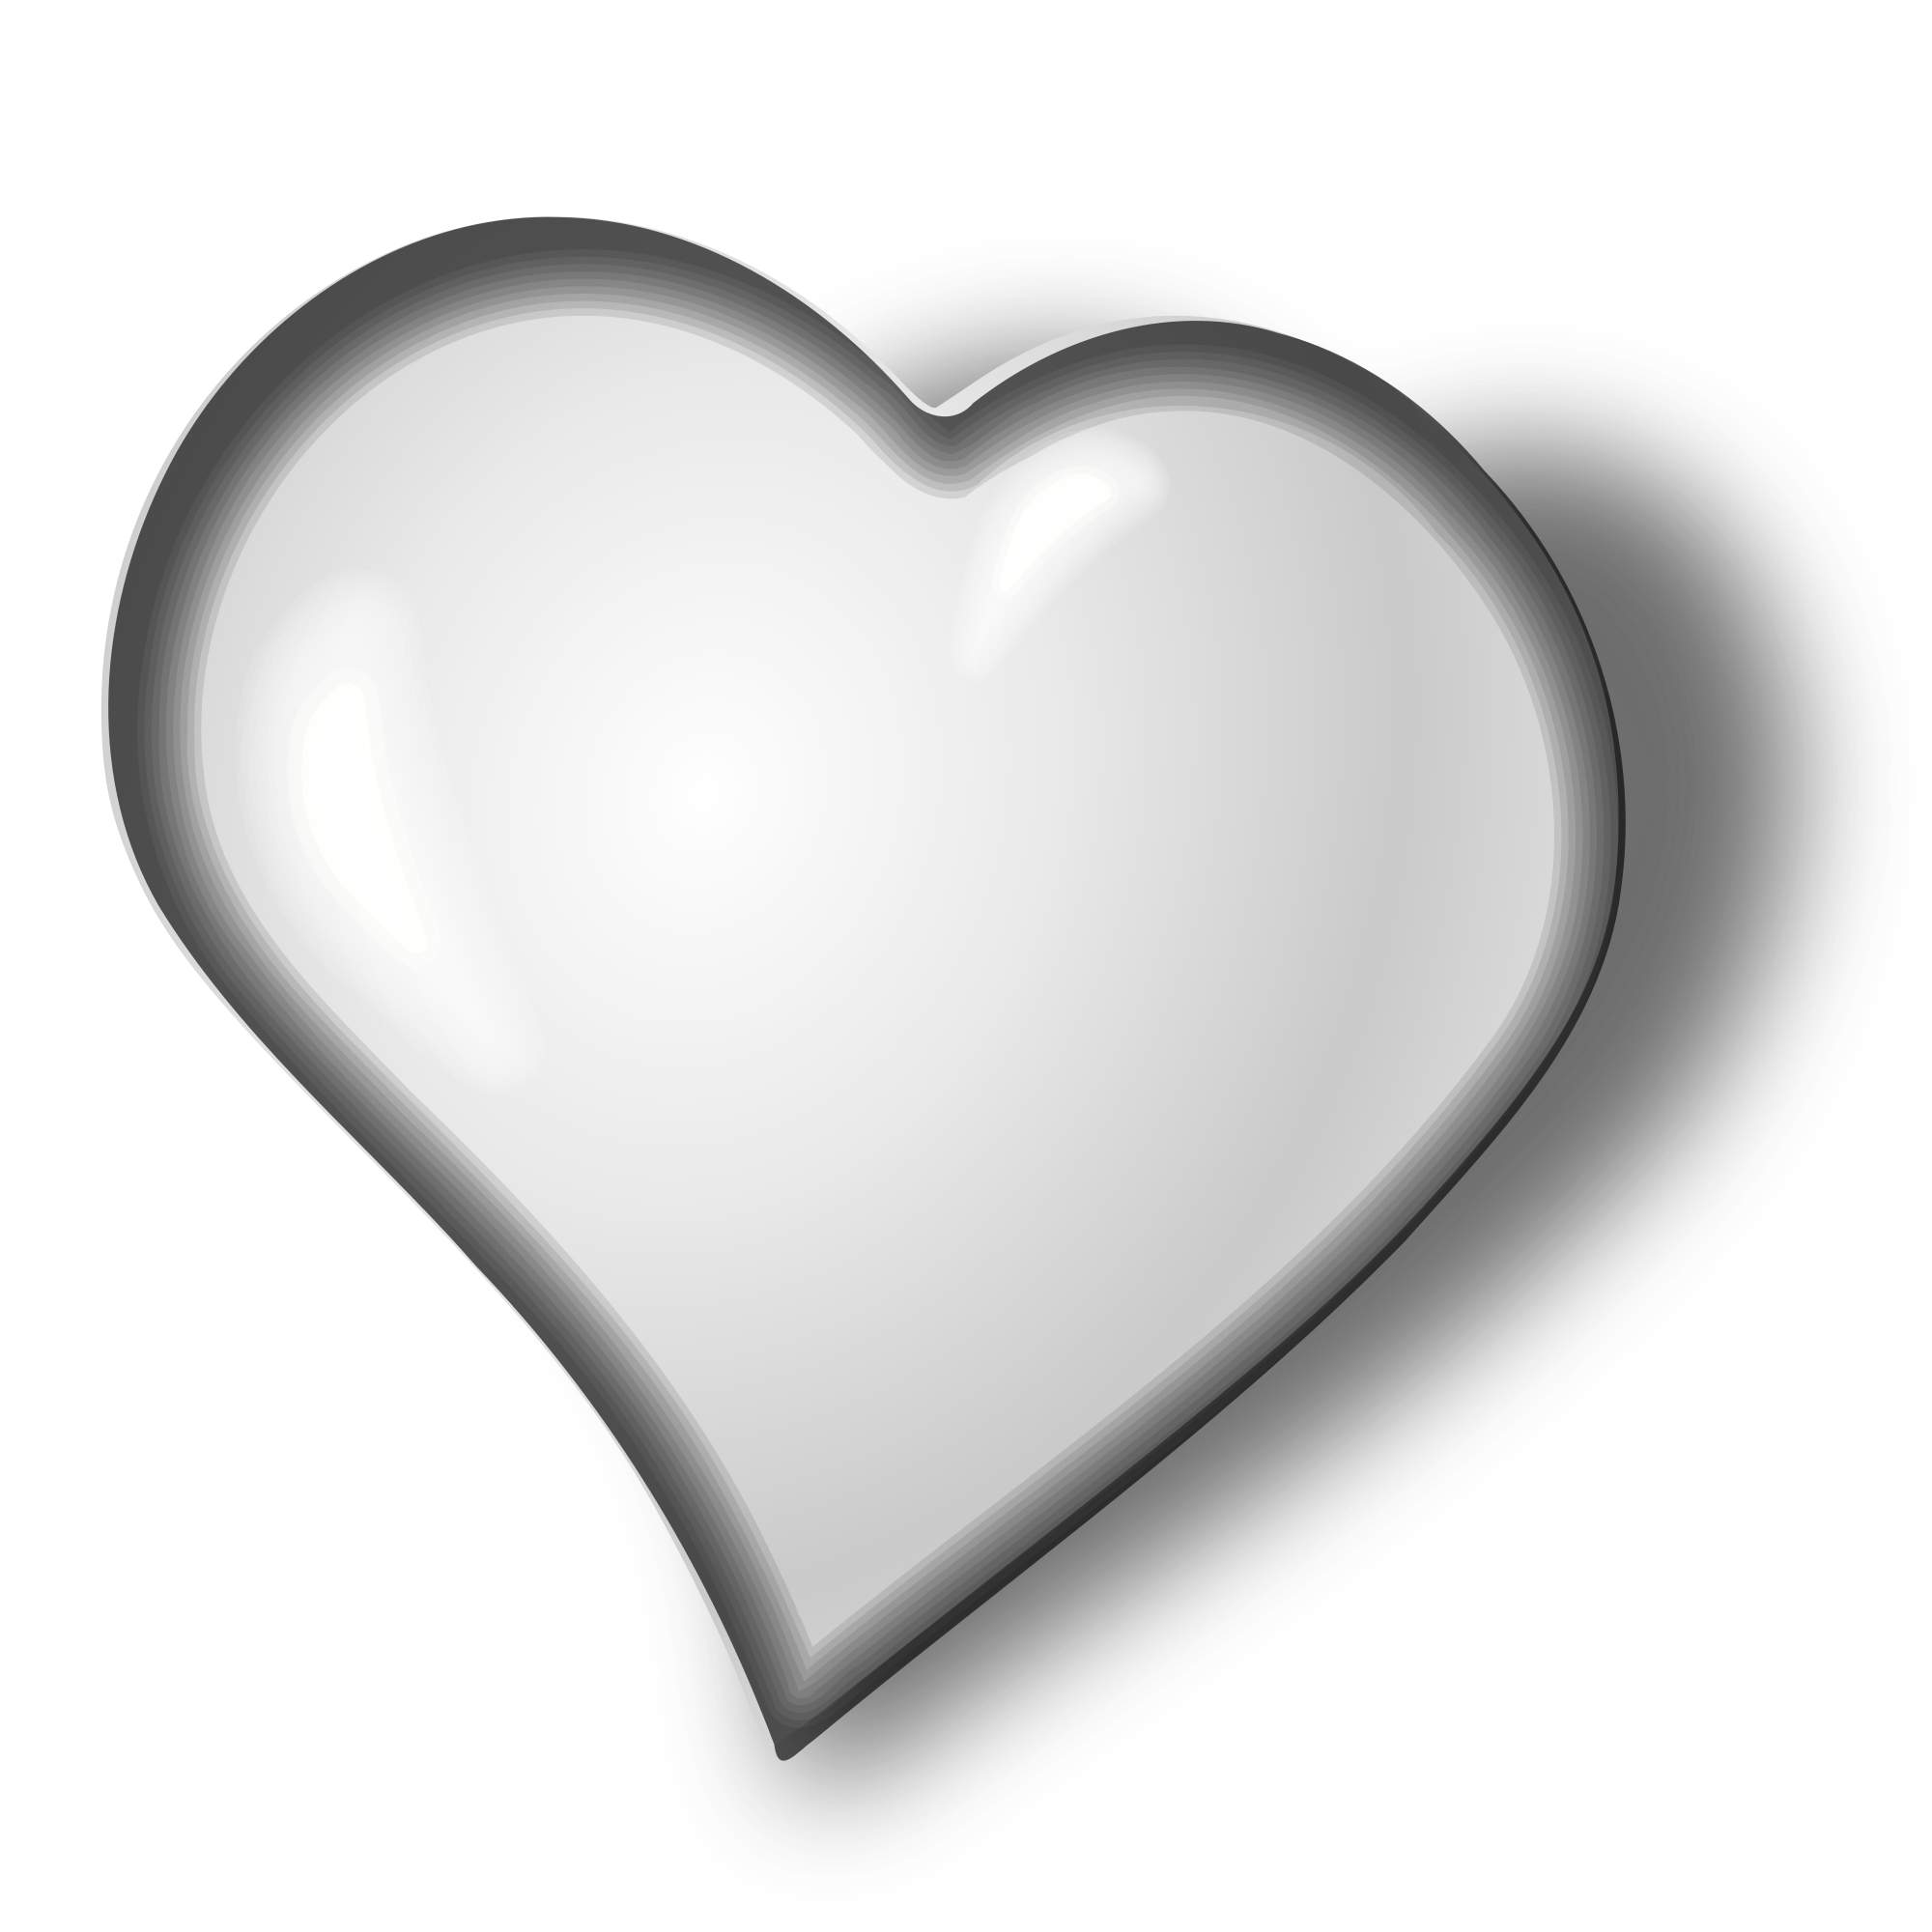 Black and white heart clipart clip art transparent library File:White heart.svg - Wikimedia Commons clip art transparent library